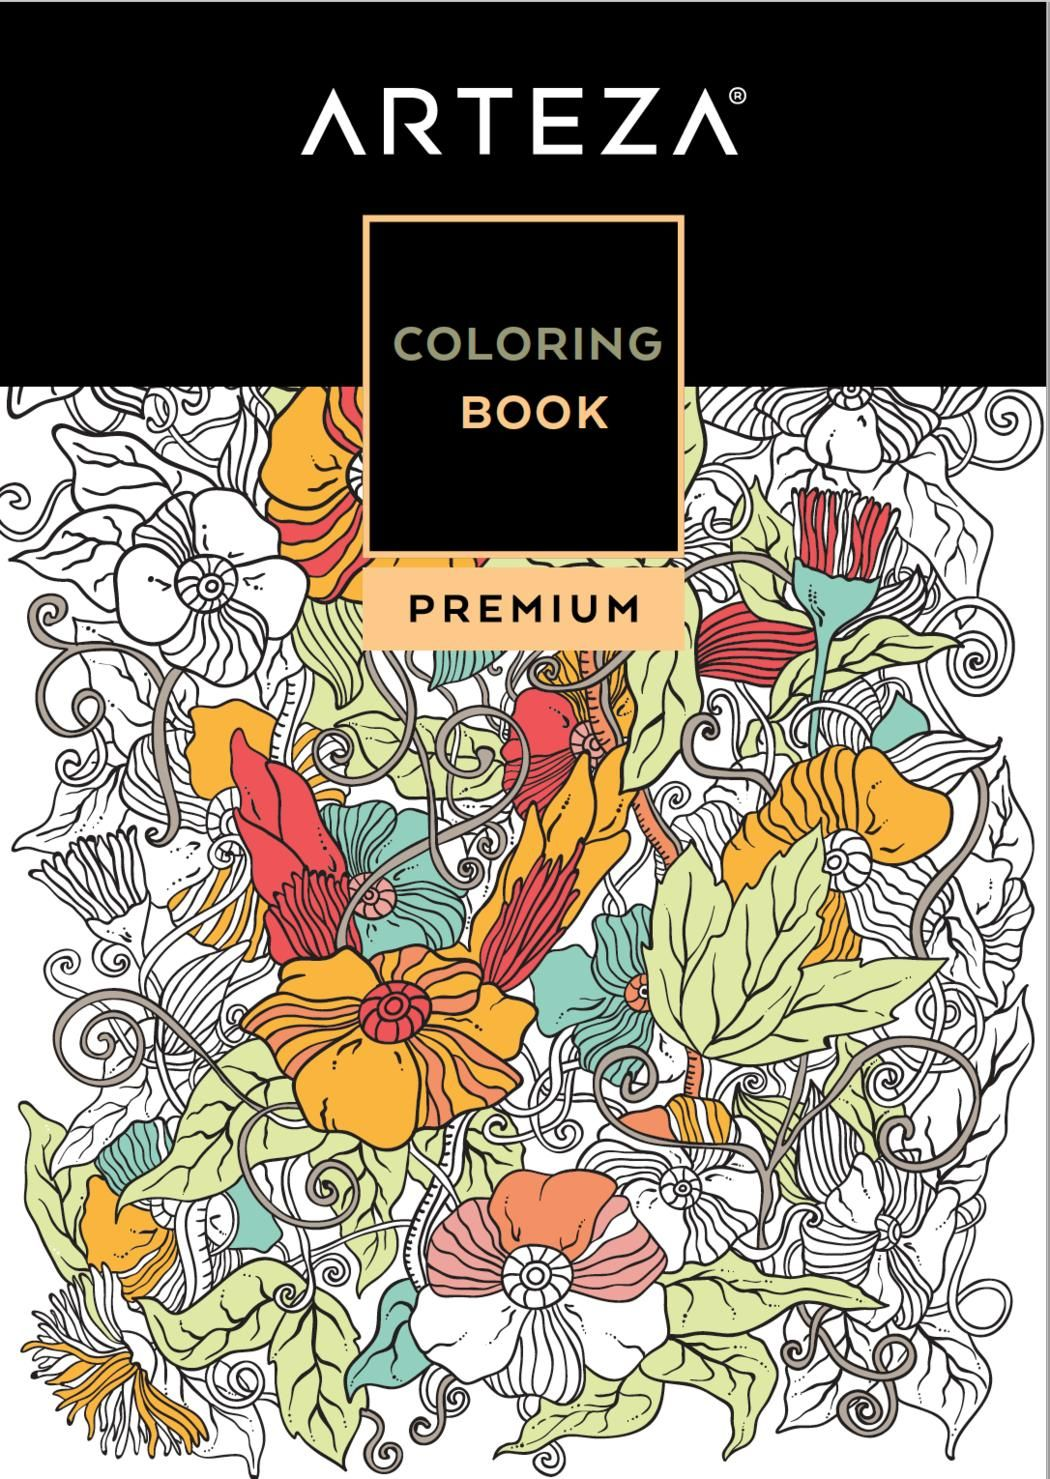 Free Downloadable Coloring Book Coloring Patterns Coloring Books